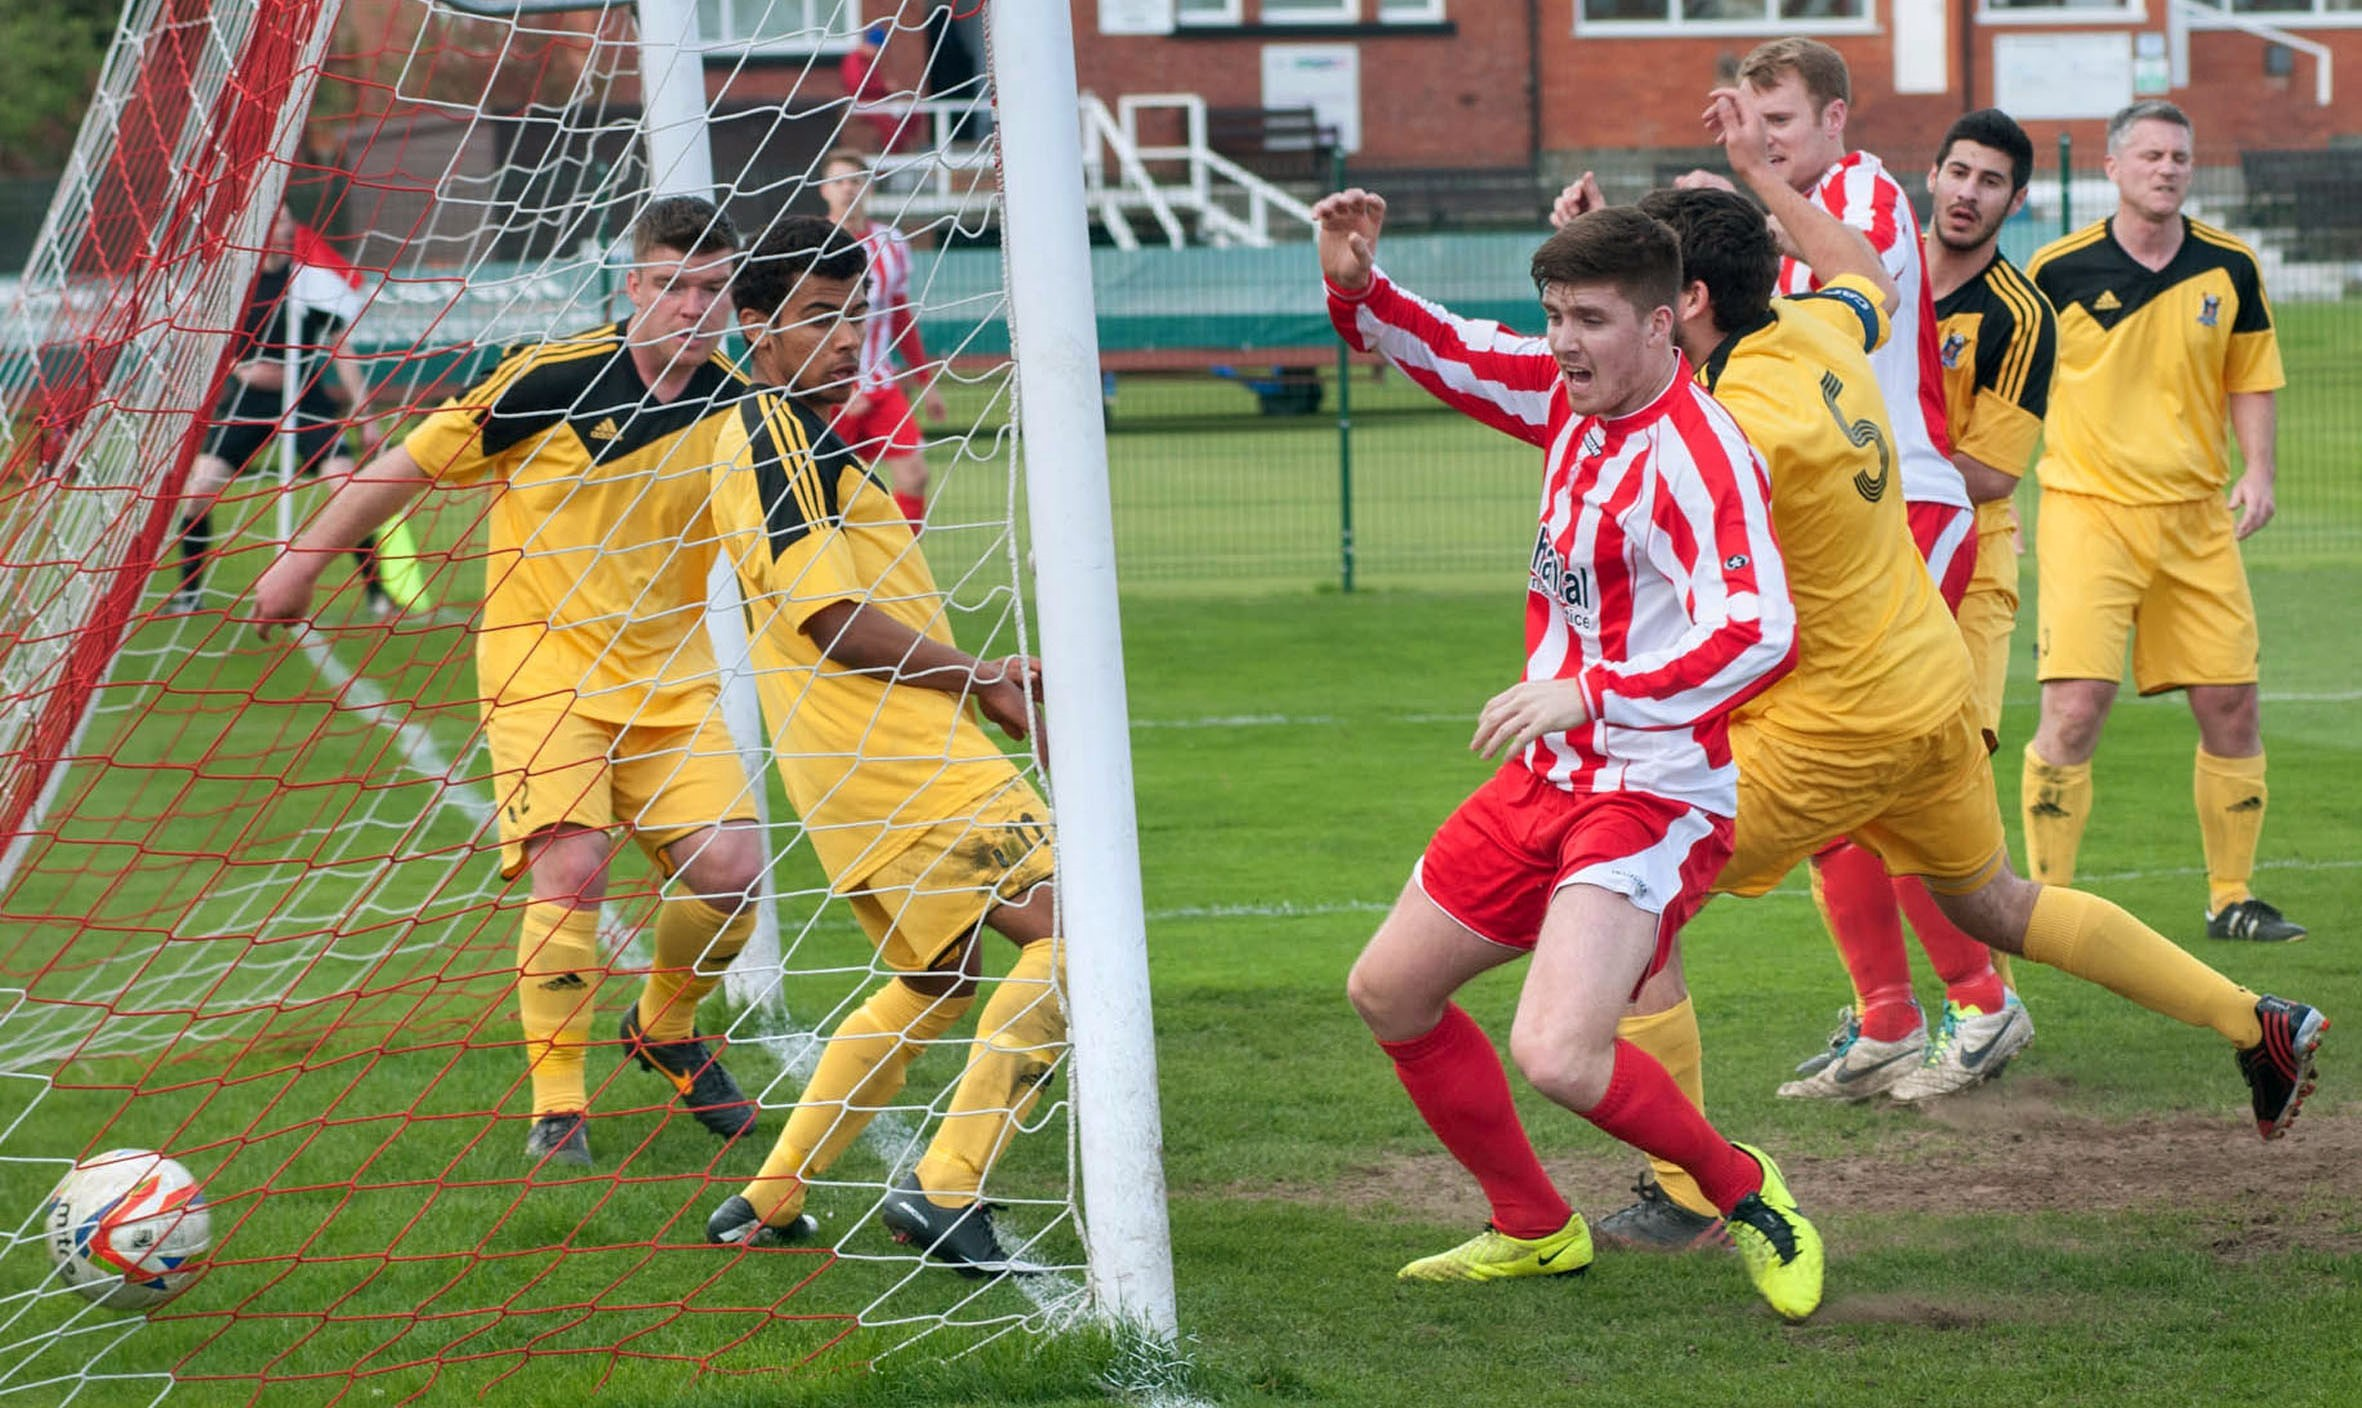 Stourbridge brushed aside AFC Totton as they maintained their fight for a top five finish.